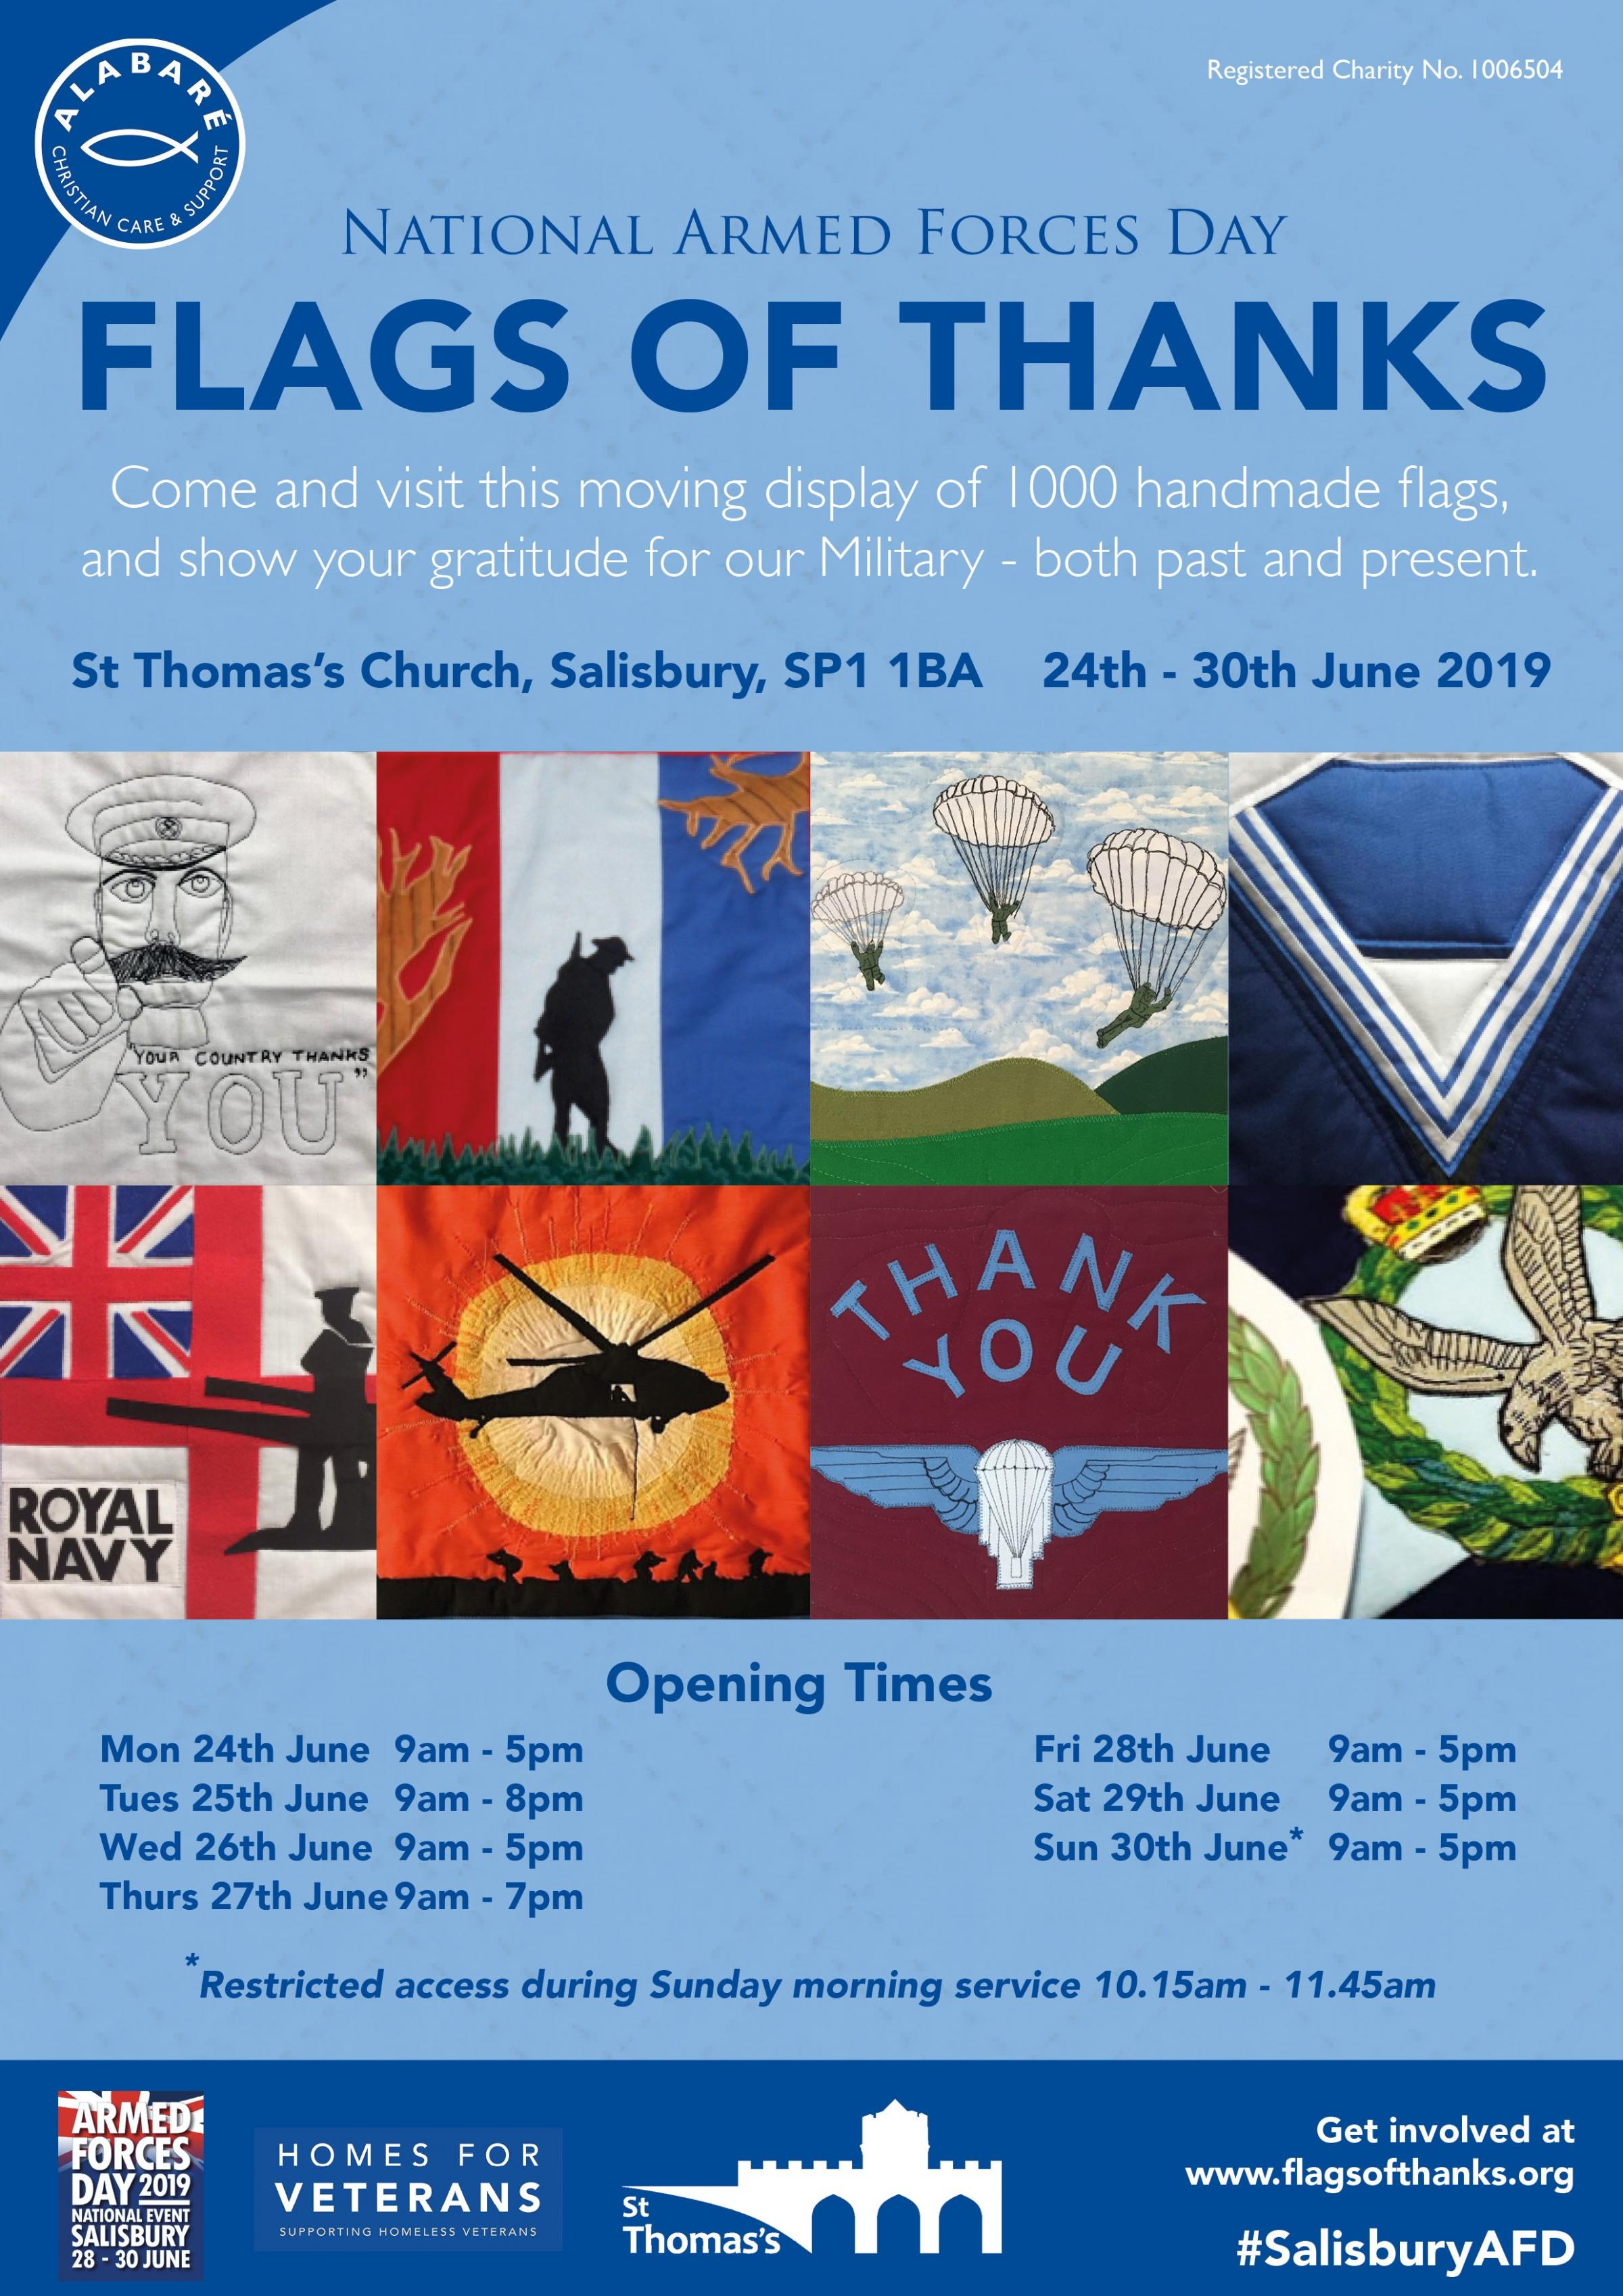 Flags of Thanks